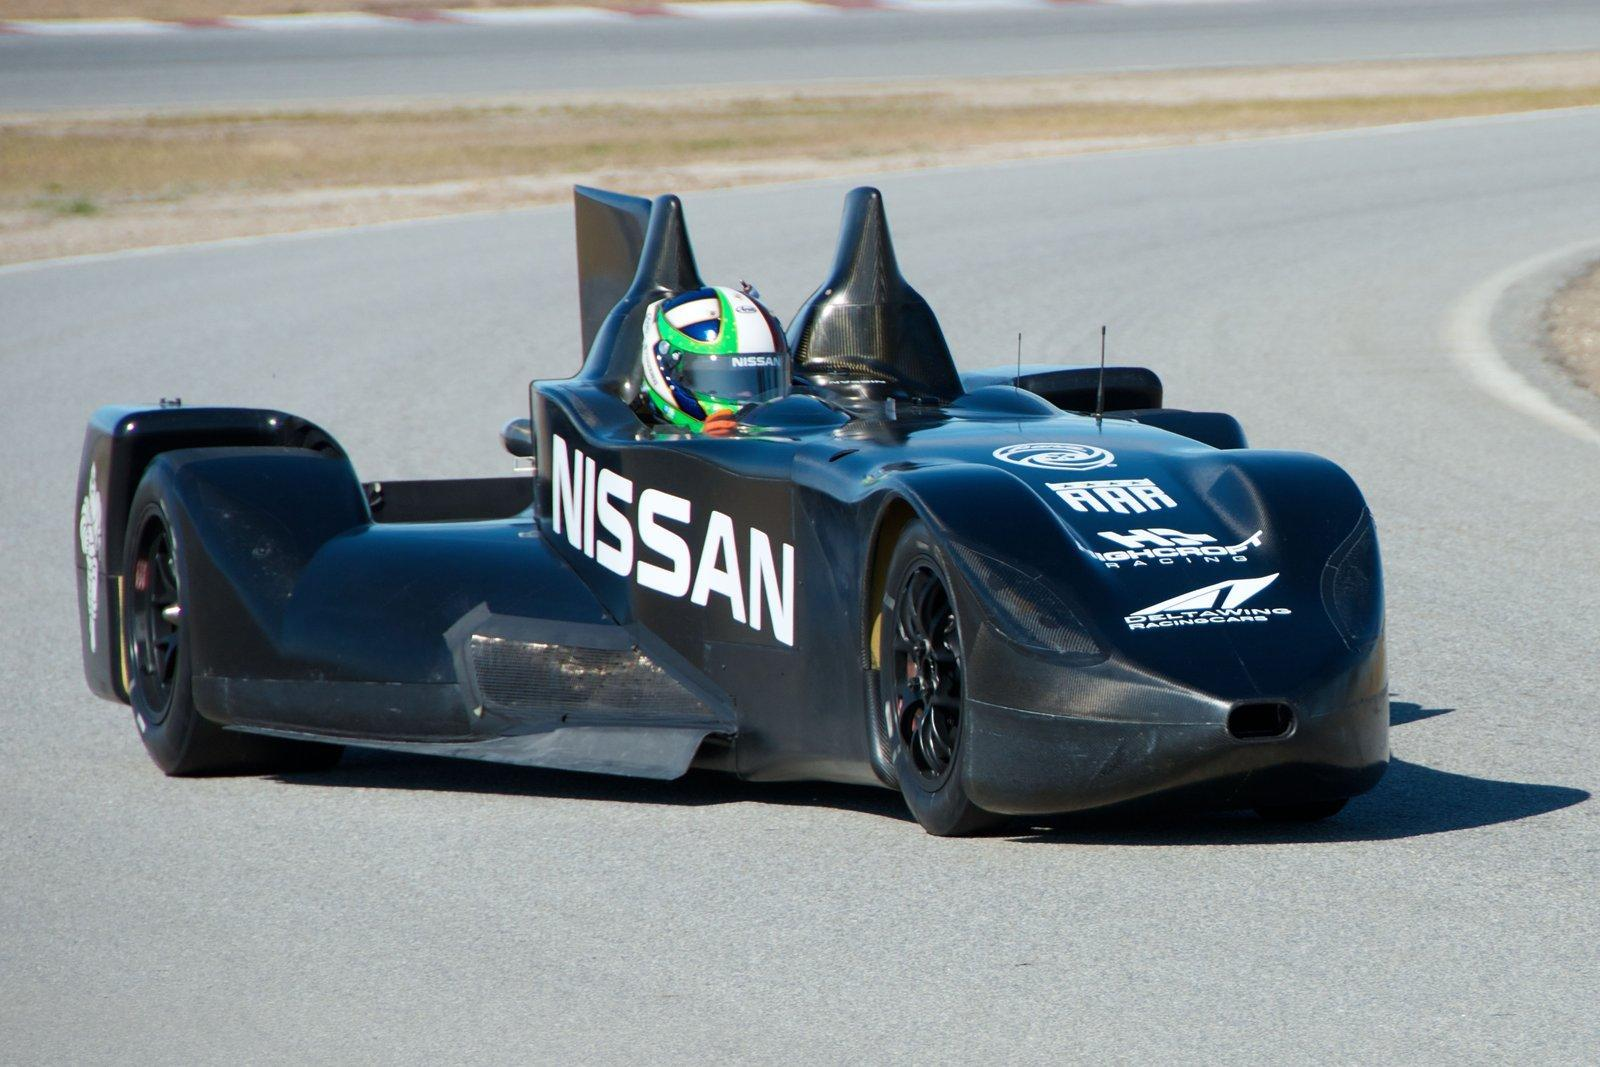 24 heures du mans nissan s 39 associe au projet deltawing 2 vid os. Black Bedroom Furniture Sets. Home Design Ideas